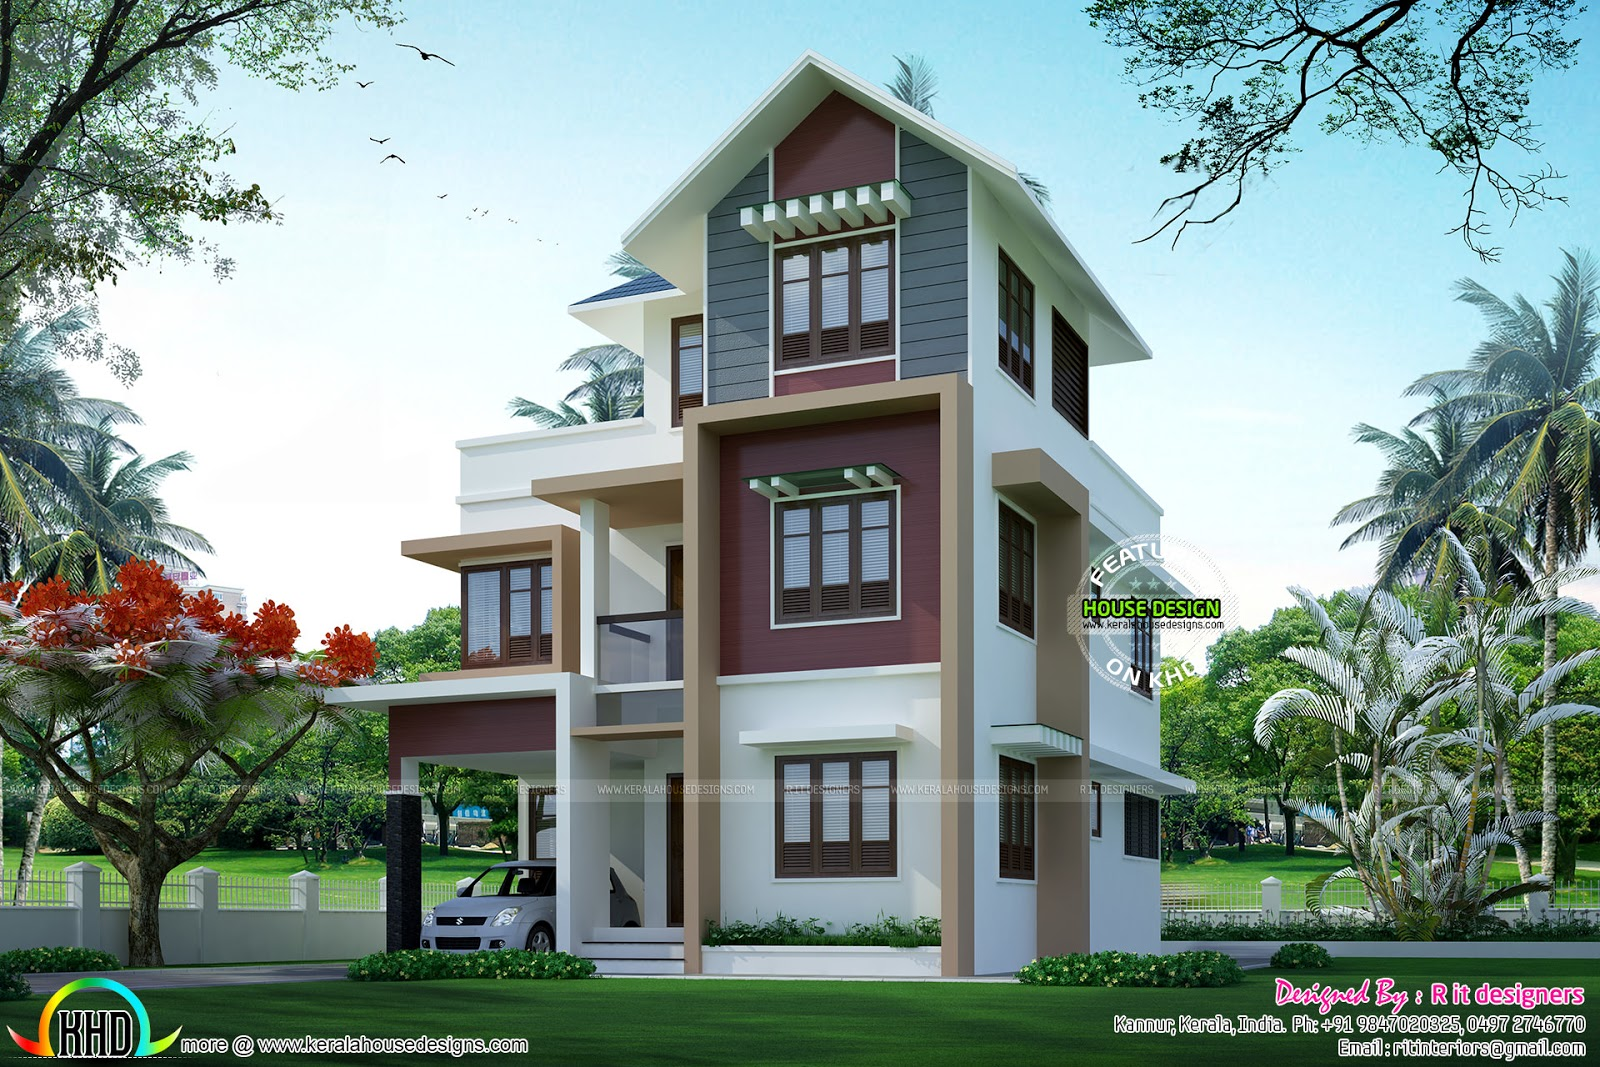 Small plot double floor house architecture kerala home for Kerala home designs photos in double floor